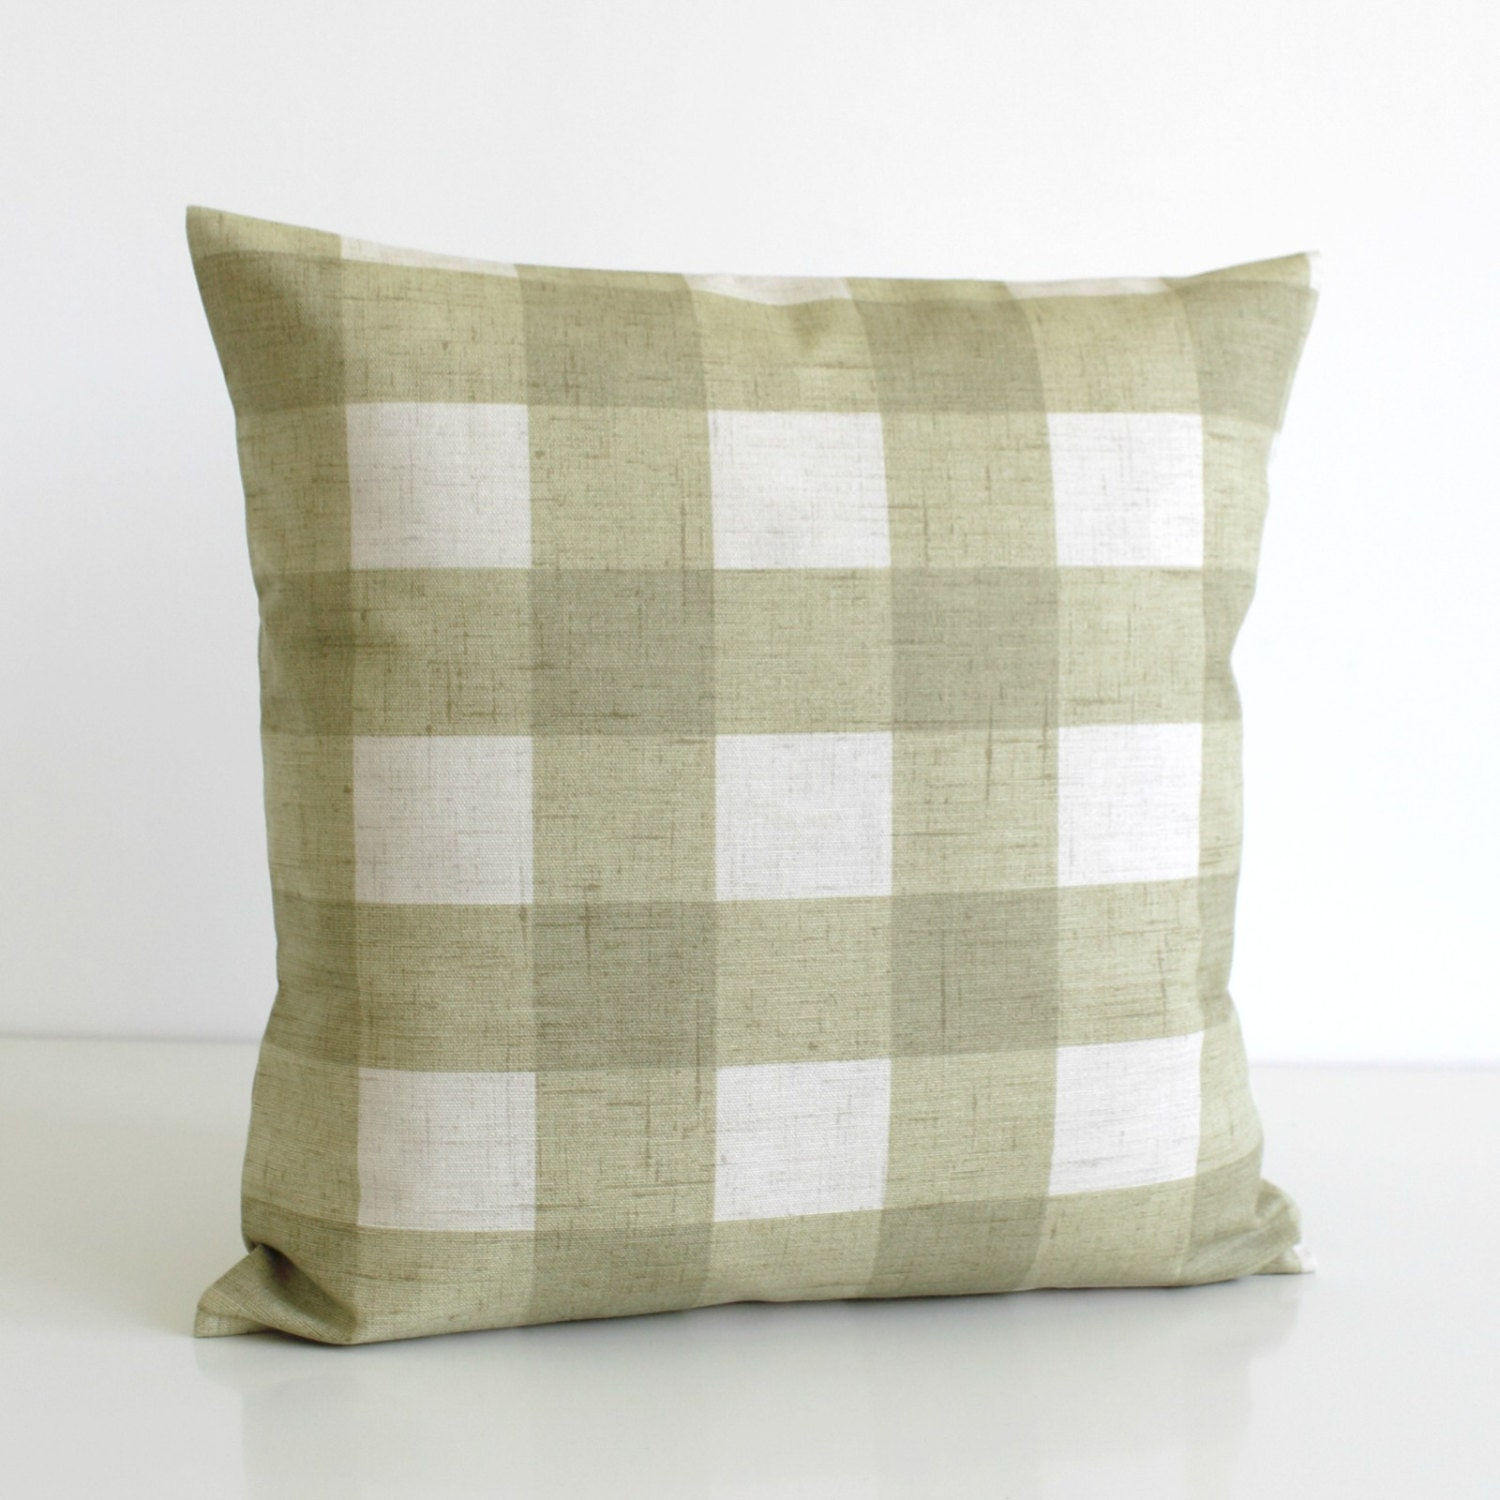 Shabby Chic Pillow Images : Shabby Chic Pillow Cover Gingham Cushion Cover by CoupleHome